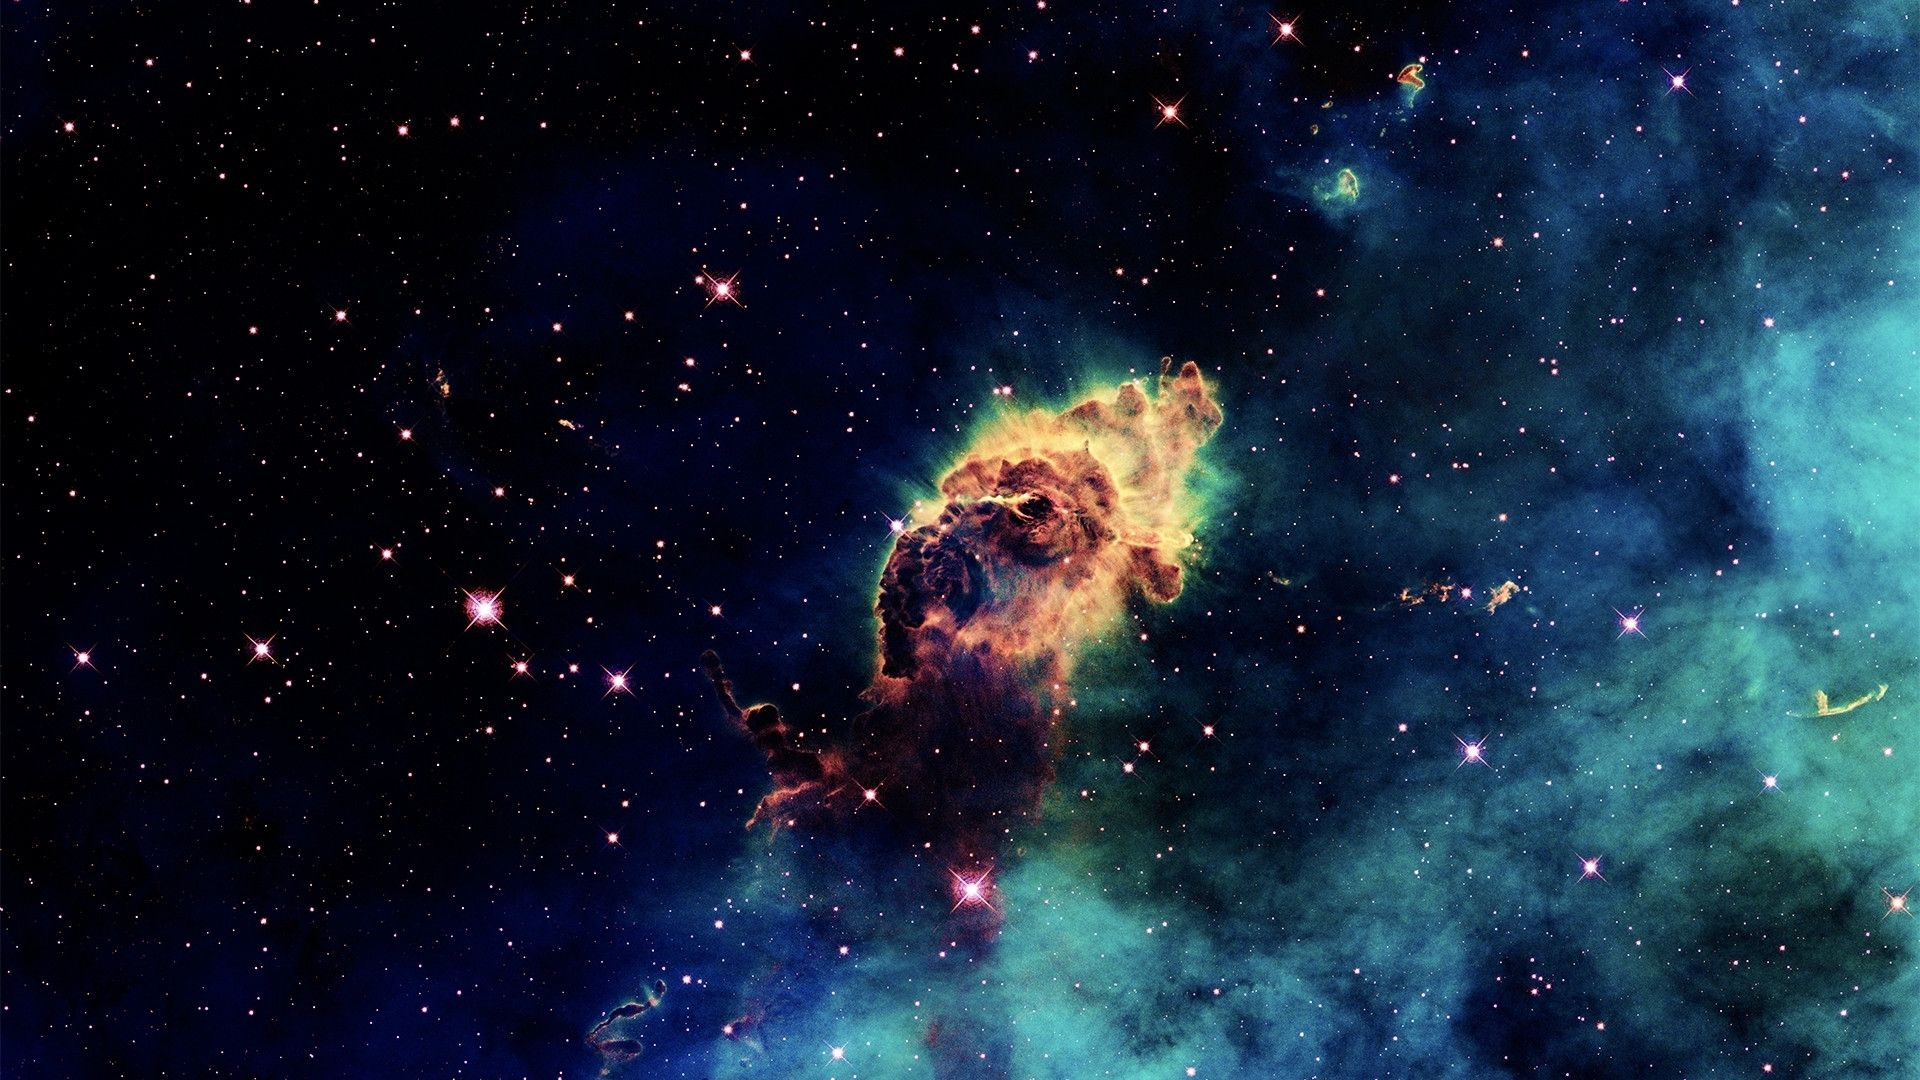 Deep Space Hd Wallpapers Top Free Deep Space Hd Backgrounds